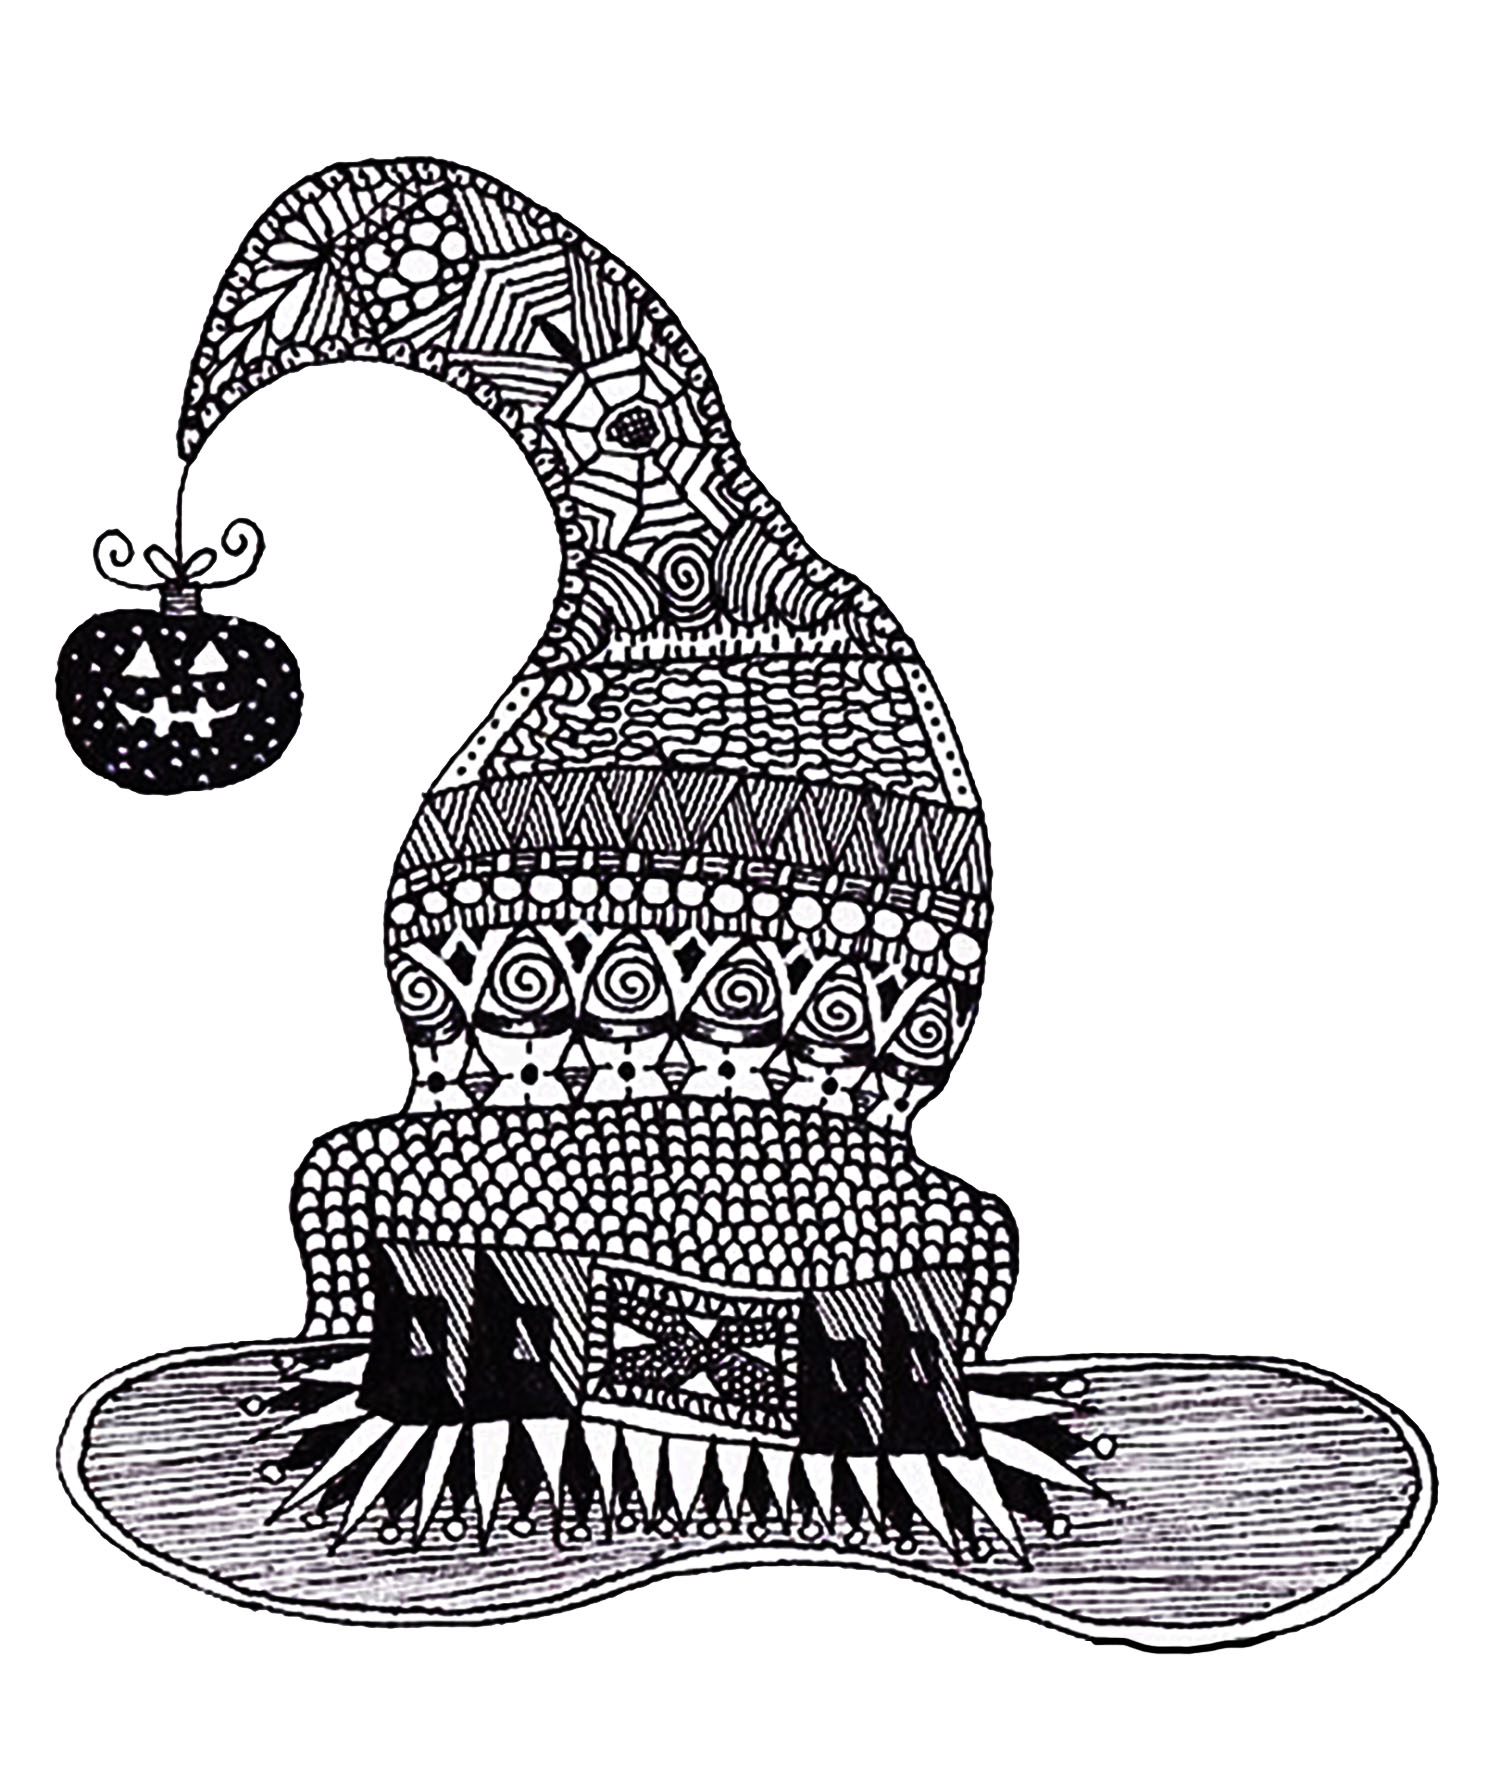 Halloween Zentangle Witch Hat Halloween Adult Coloring Pages